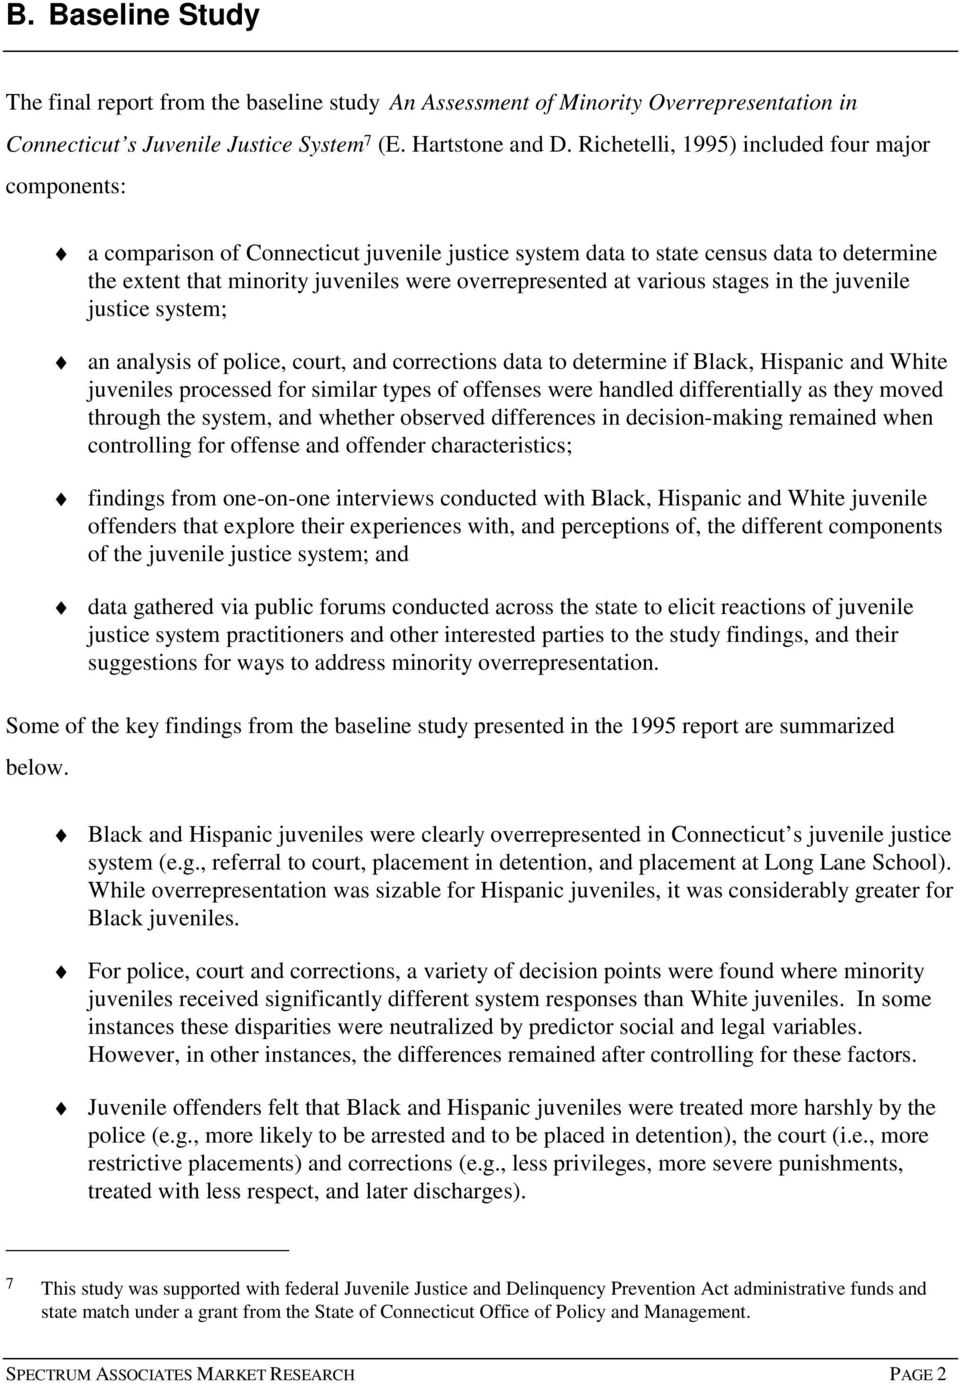 various stages in the juvenile justice system; an analysis of police, court, and corrections data to determine if Black, Hispanic and White juveniles processed for similar types of offenses were